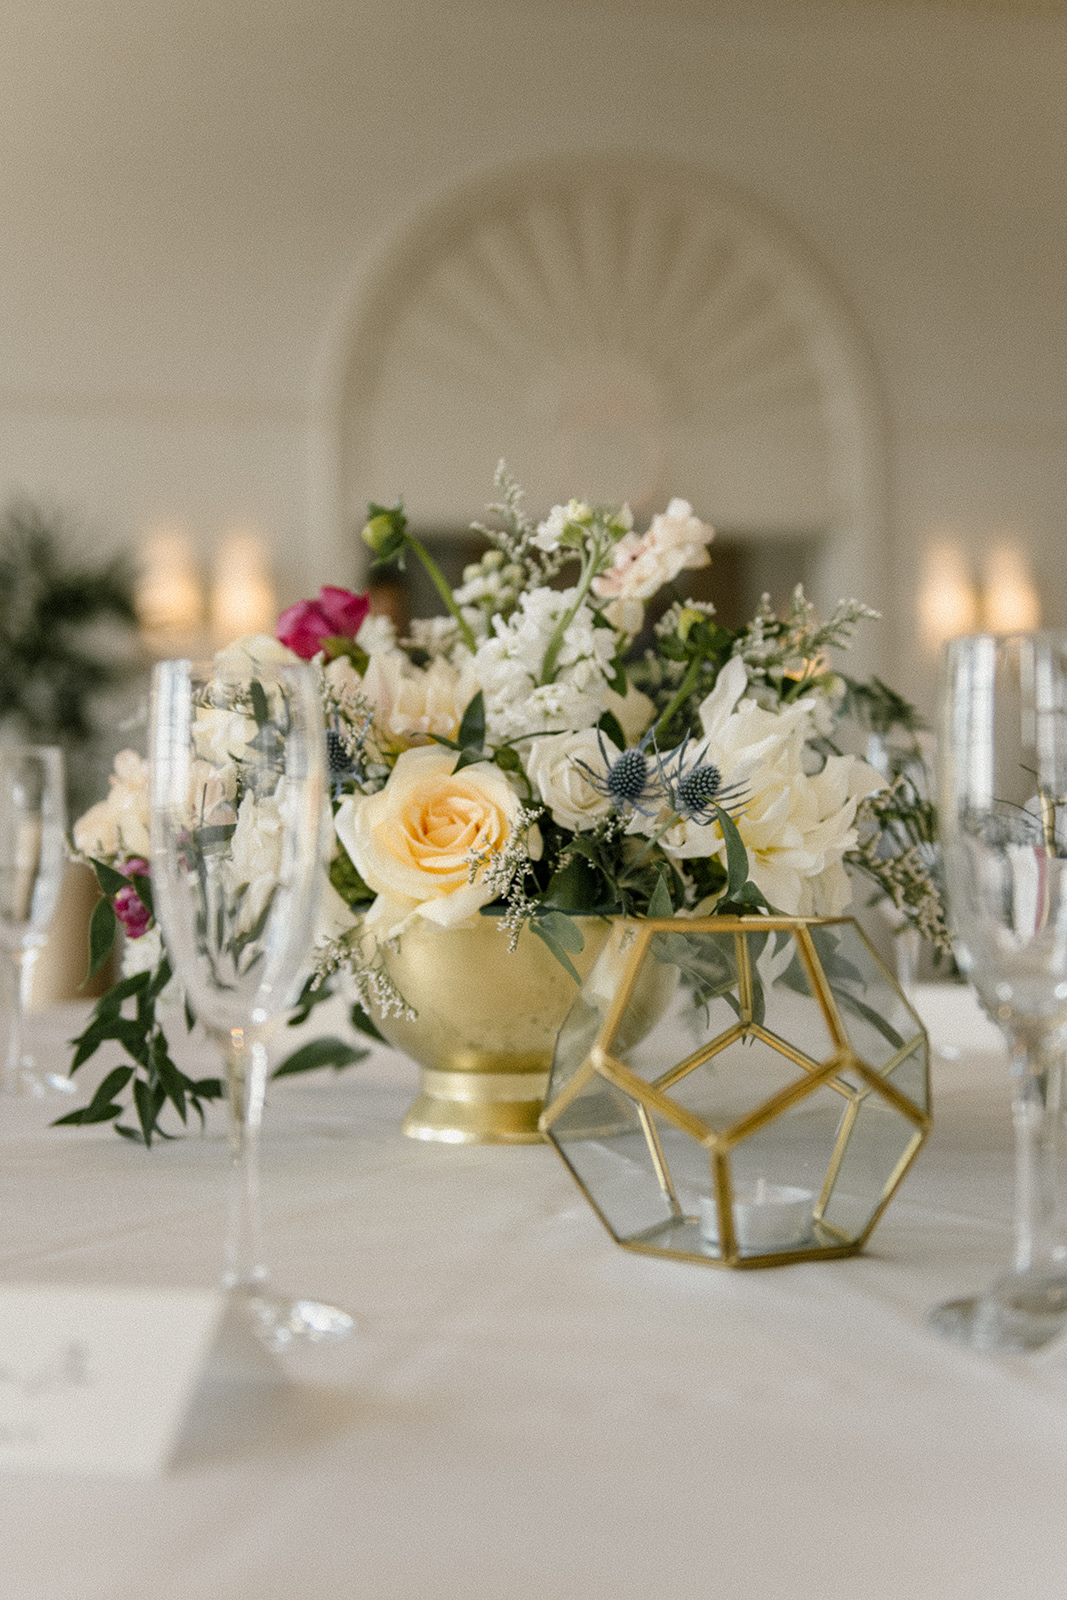 New Orleans Wedding Planner. Everly Event Planning & Design